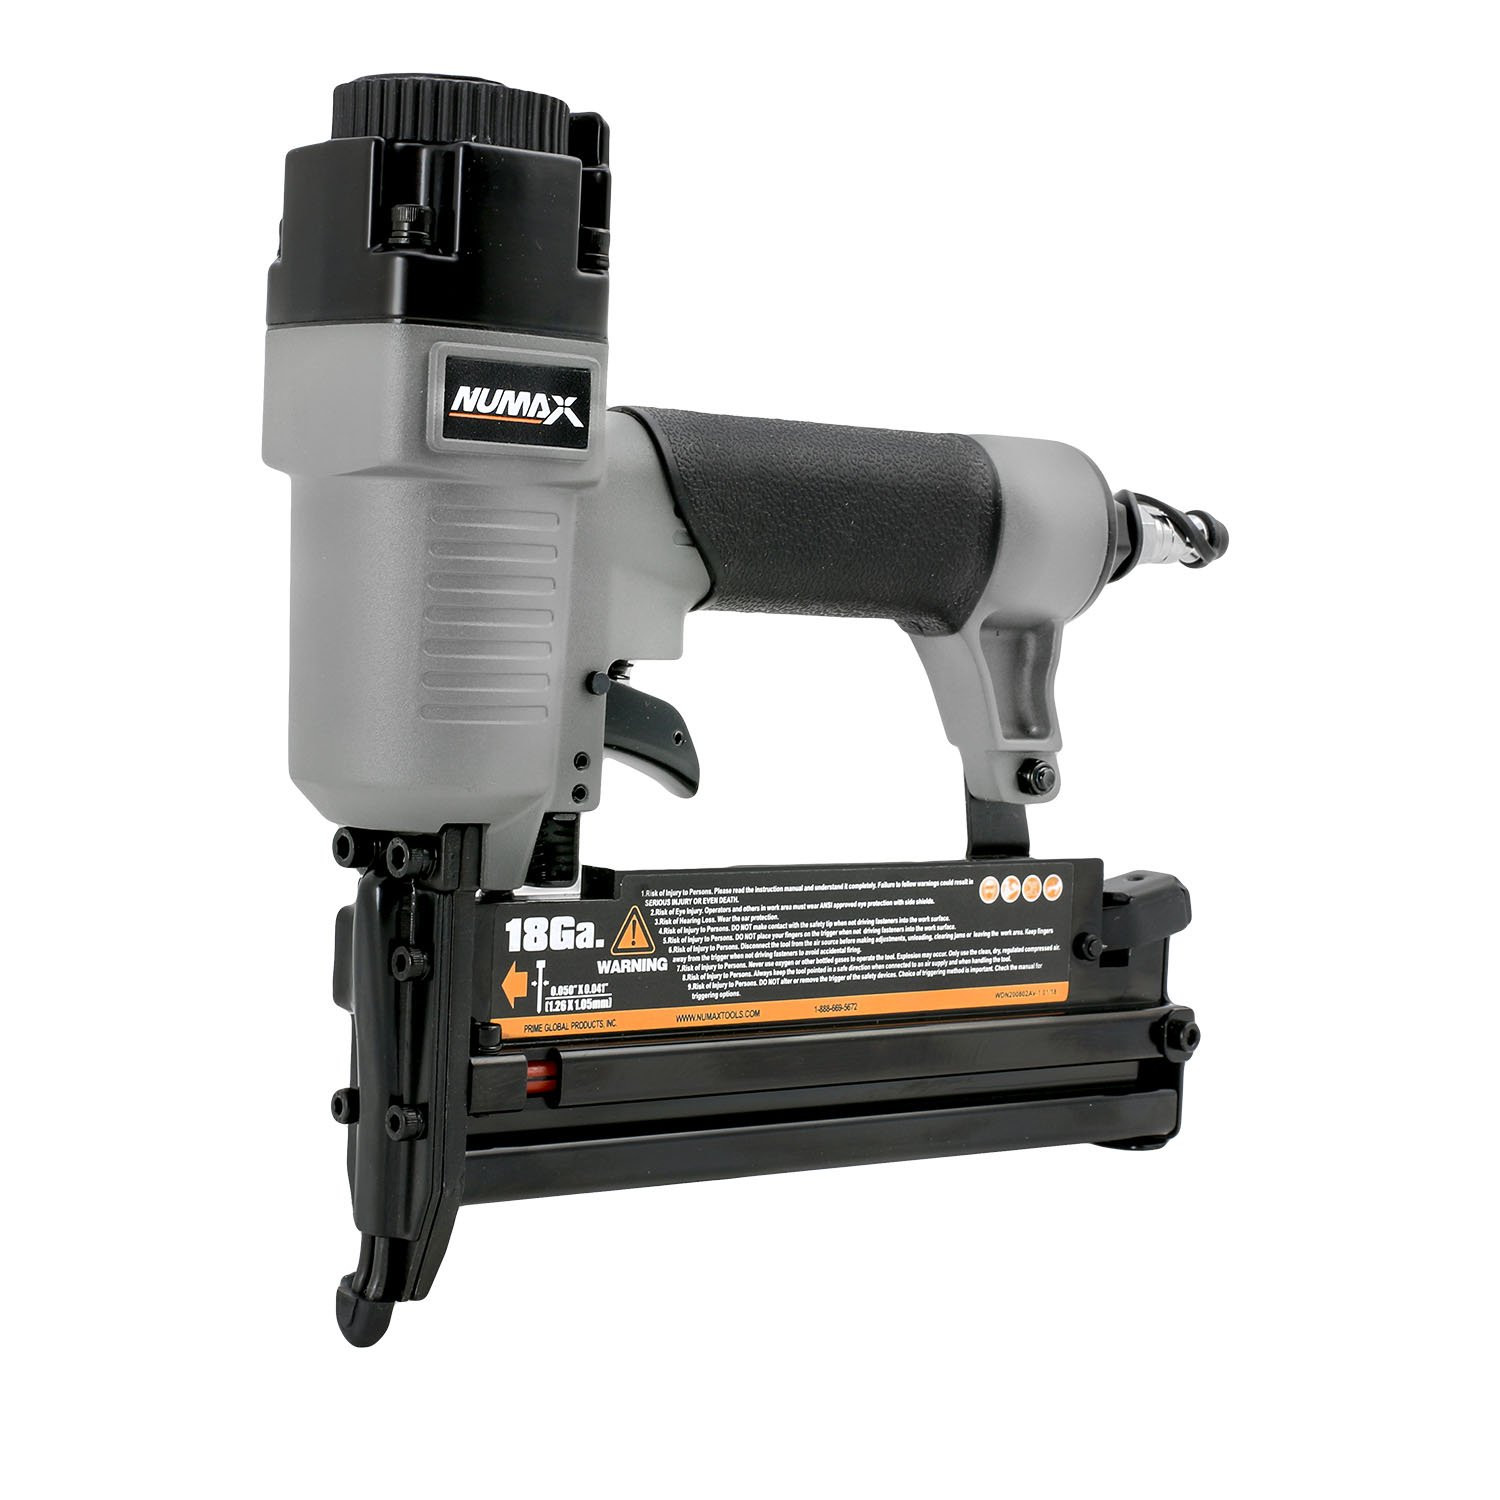 hardwood floor stapler rental cost of best rated in power nailers staplers helpful customer reviews inside numax sl31 18 16 gauge pneumatic 3 in 1 nailer stapler